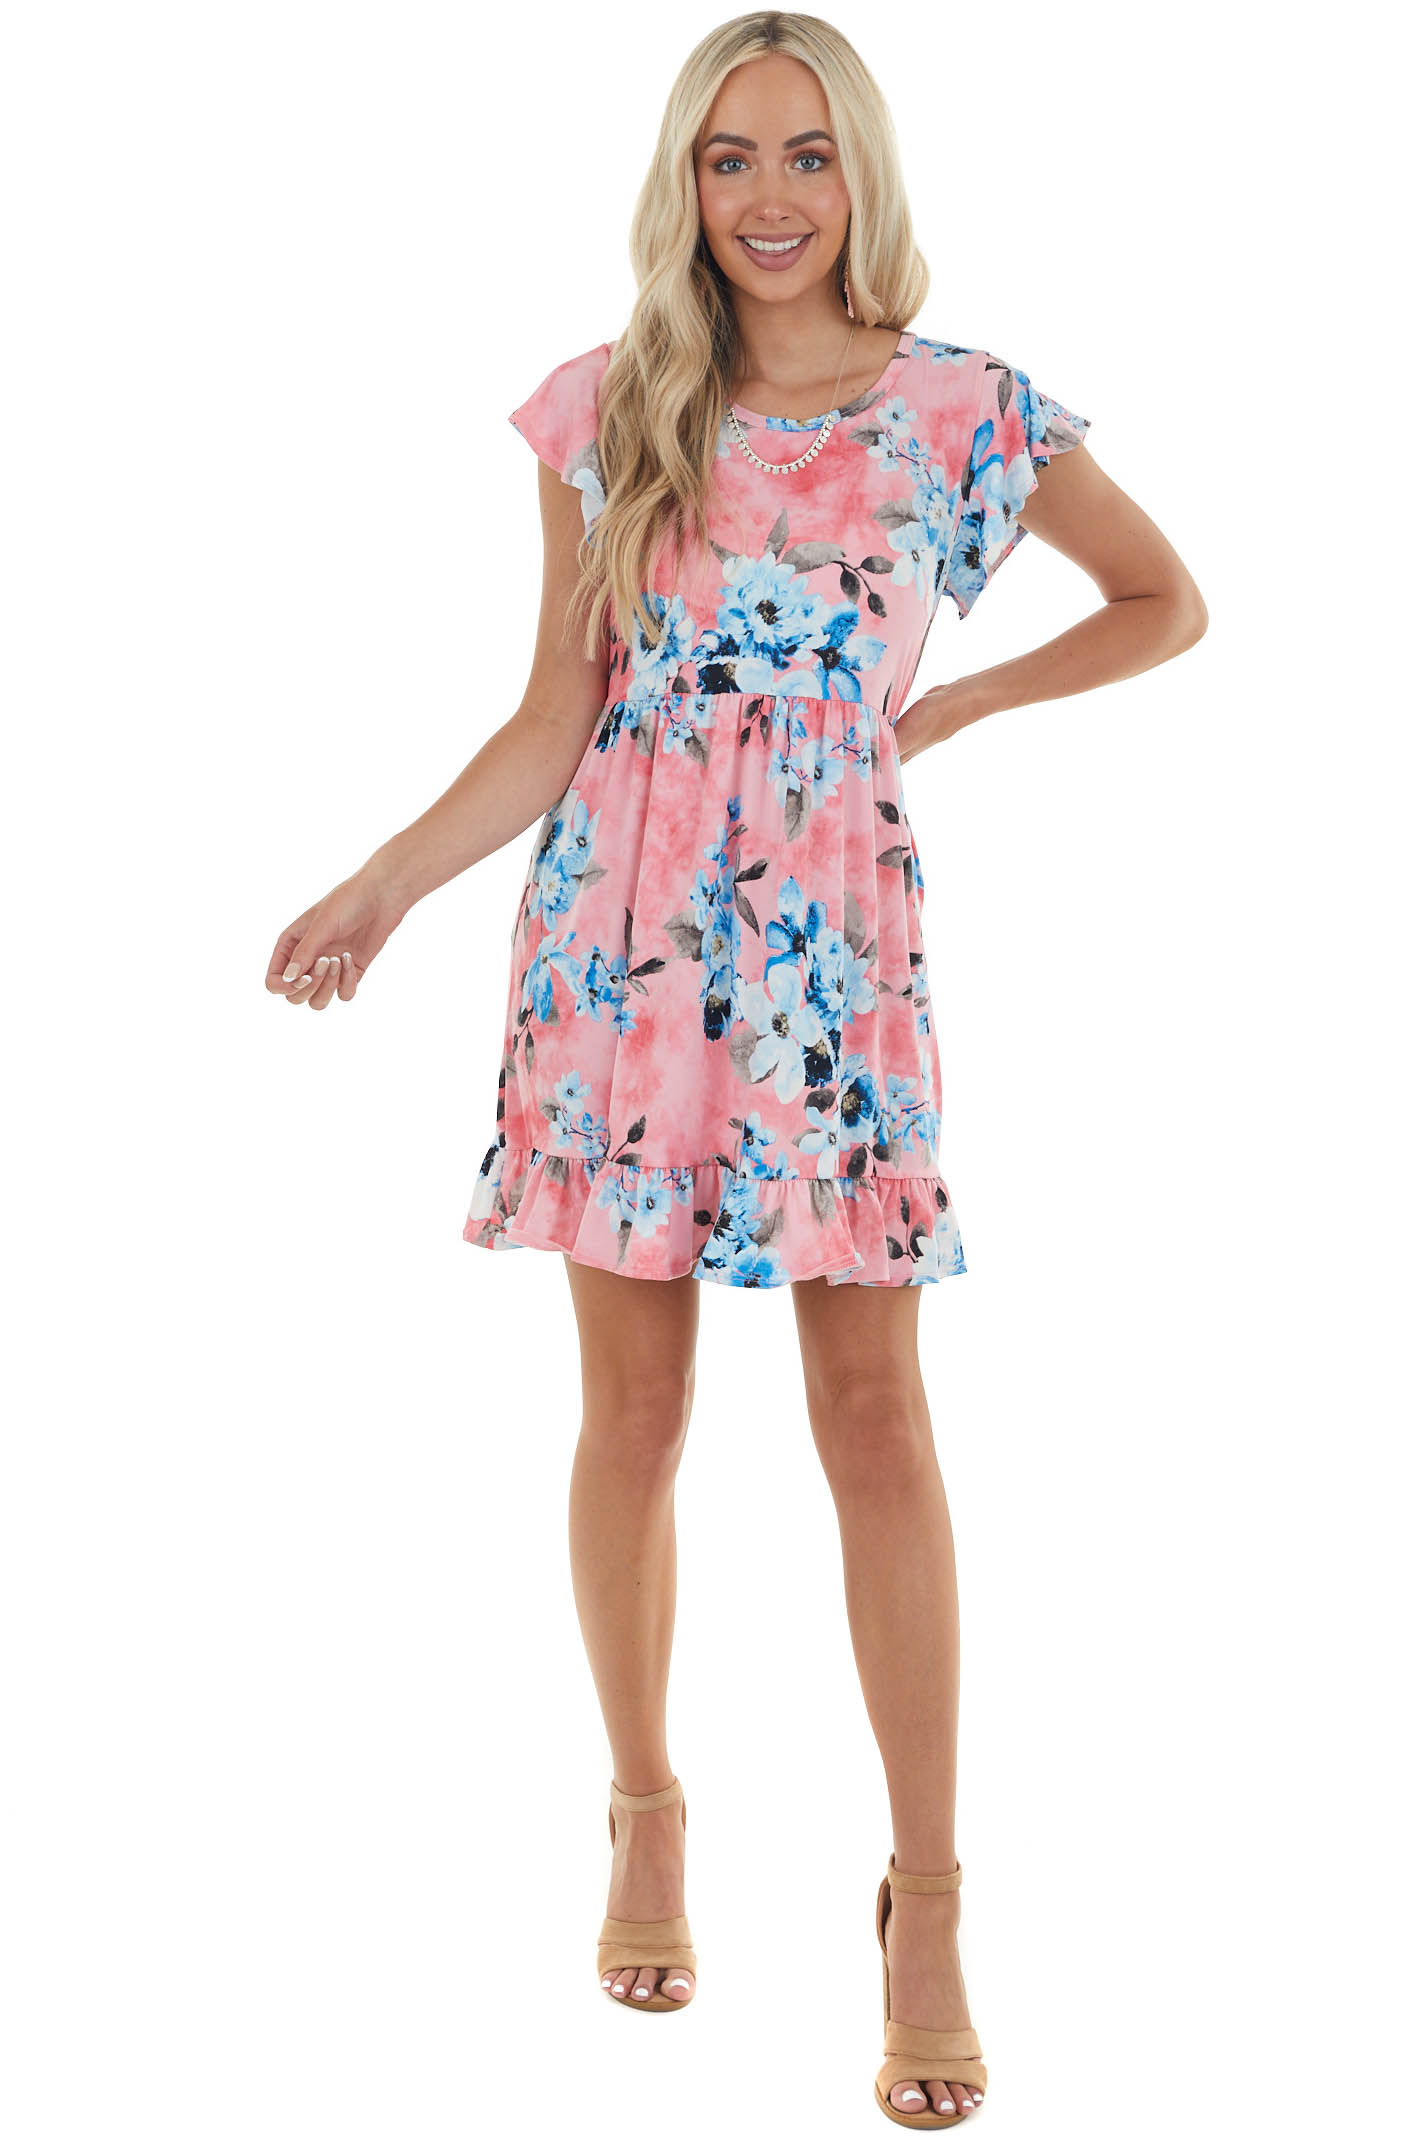 Watermelon Floral Short Dress with Pockets